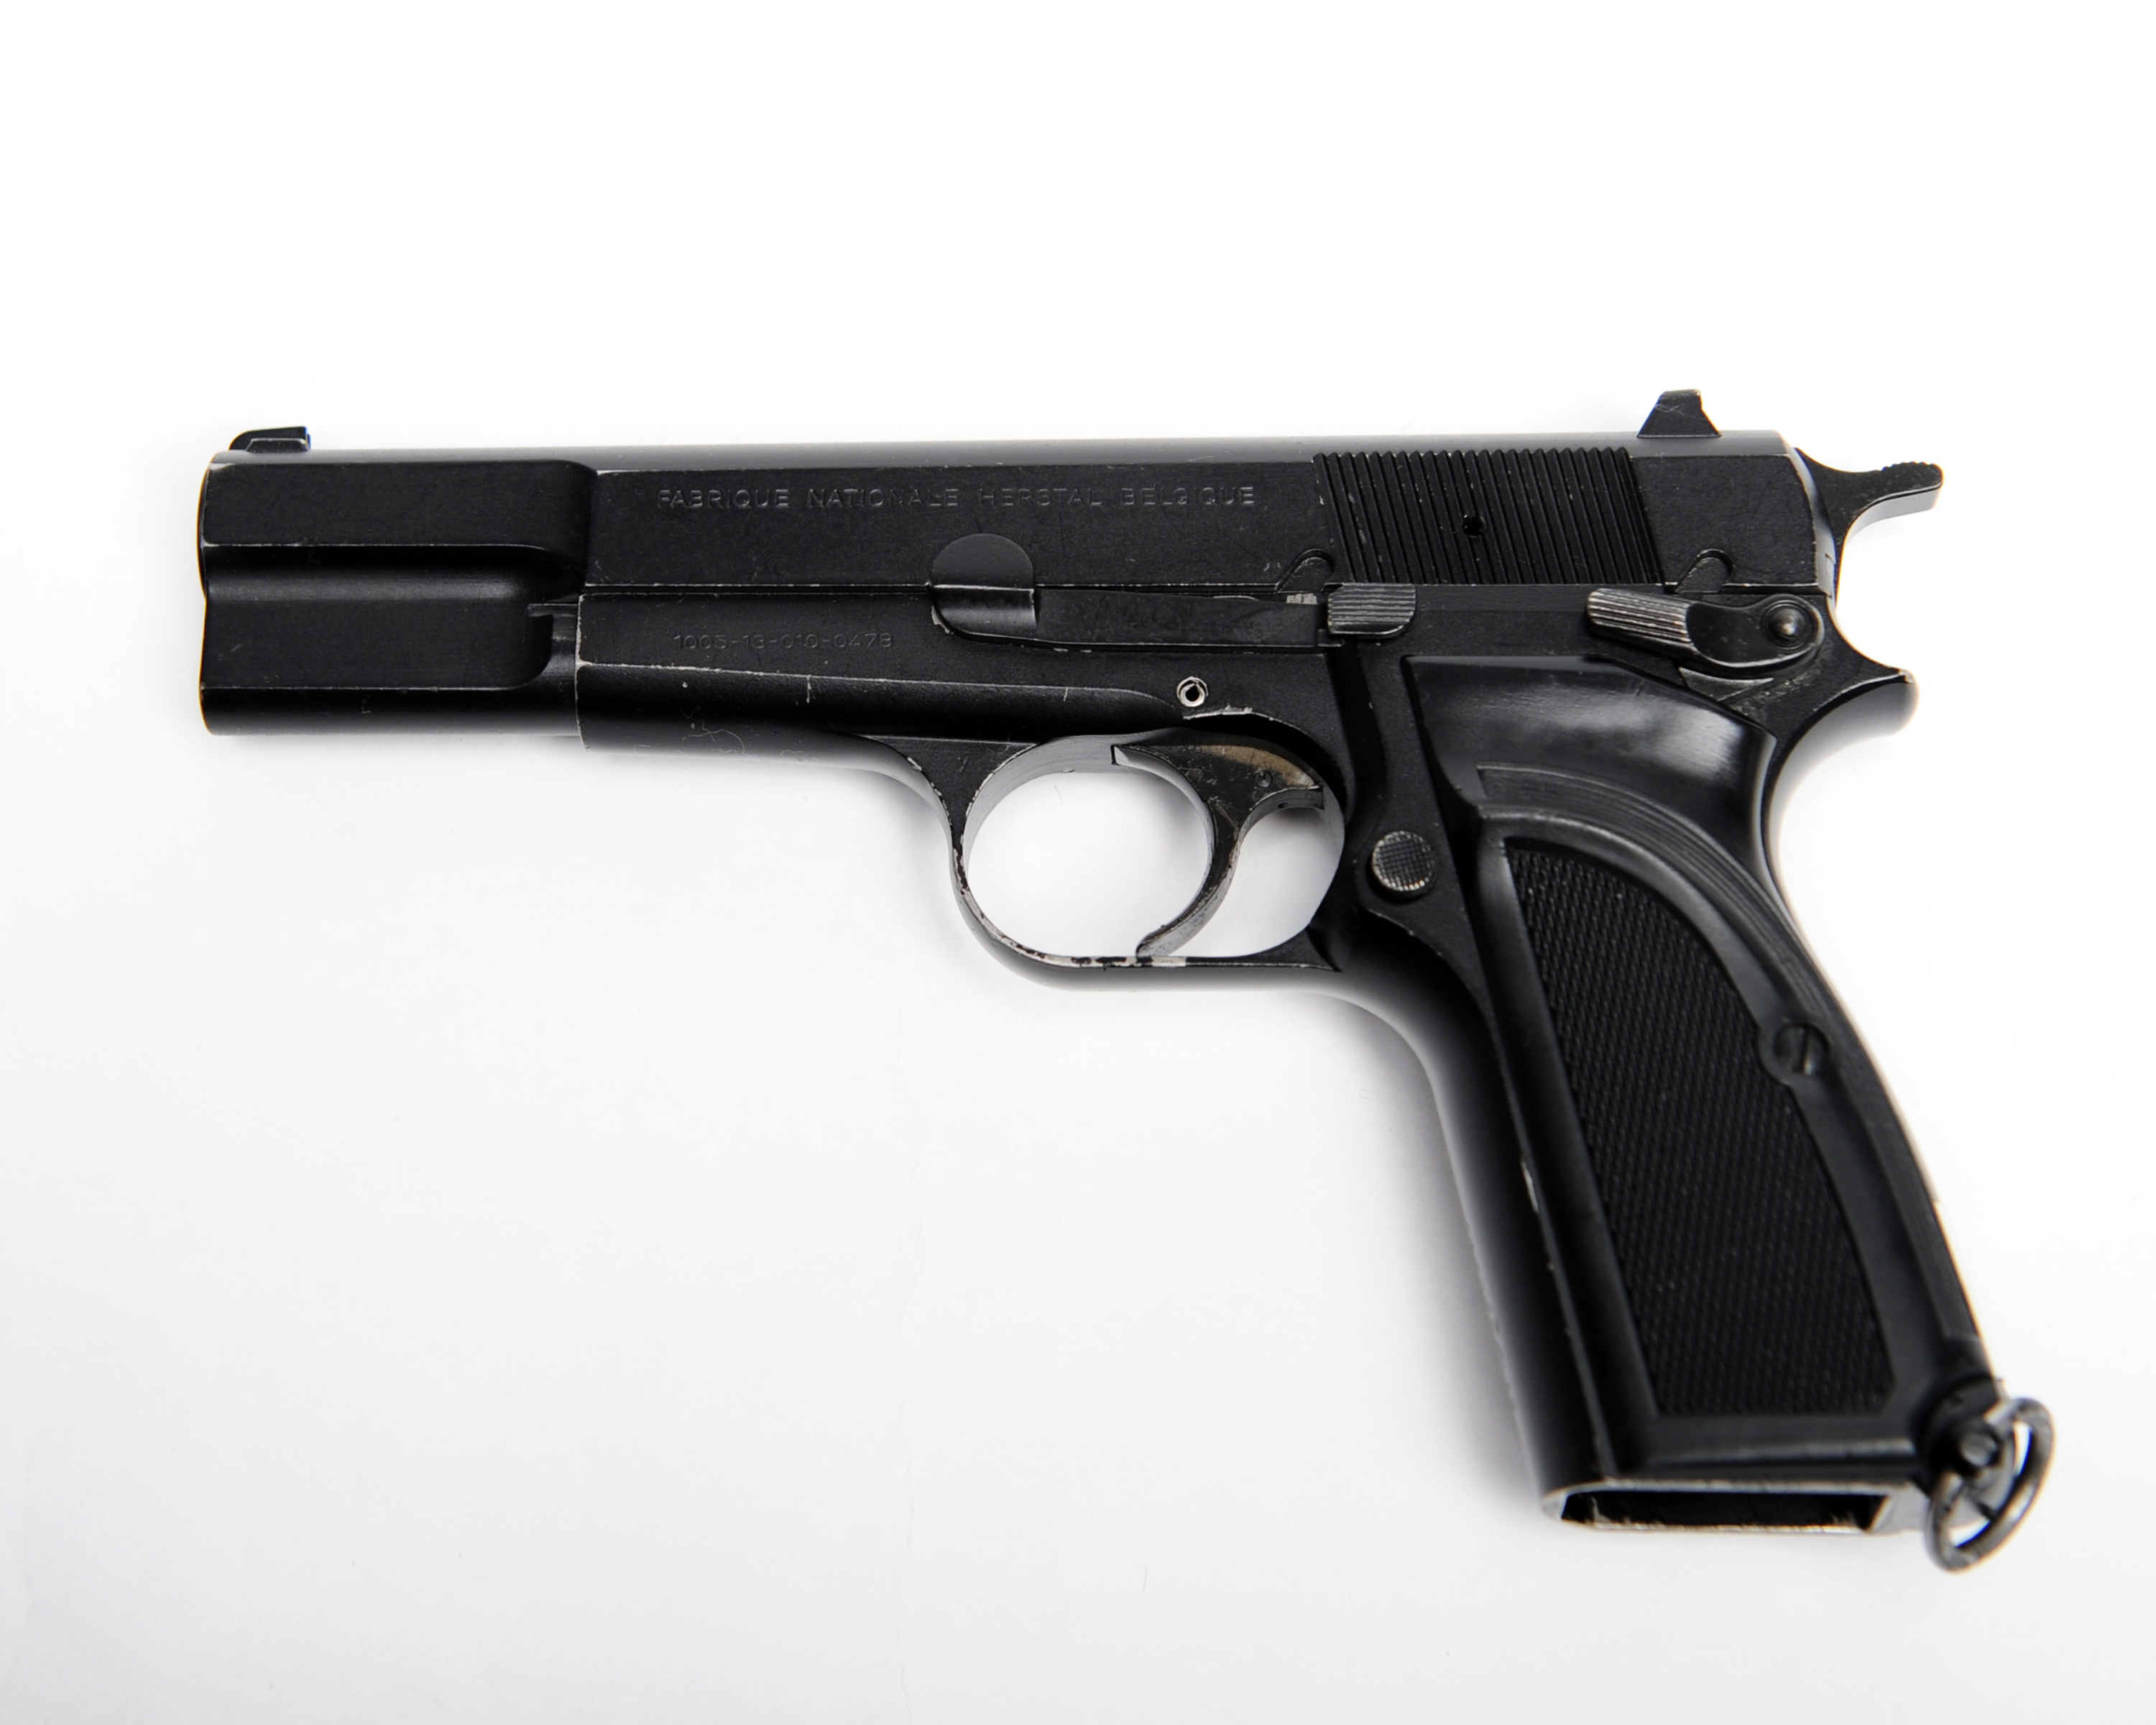 File:Browning 9mm Pistol MOD 45151558 jpg - Wikimedia Commons